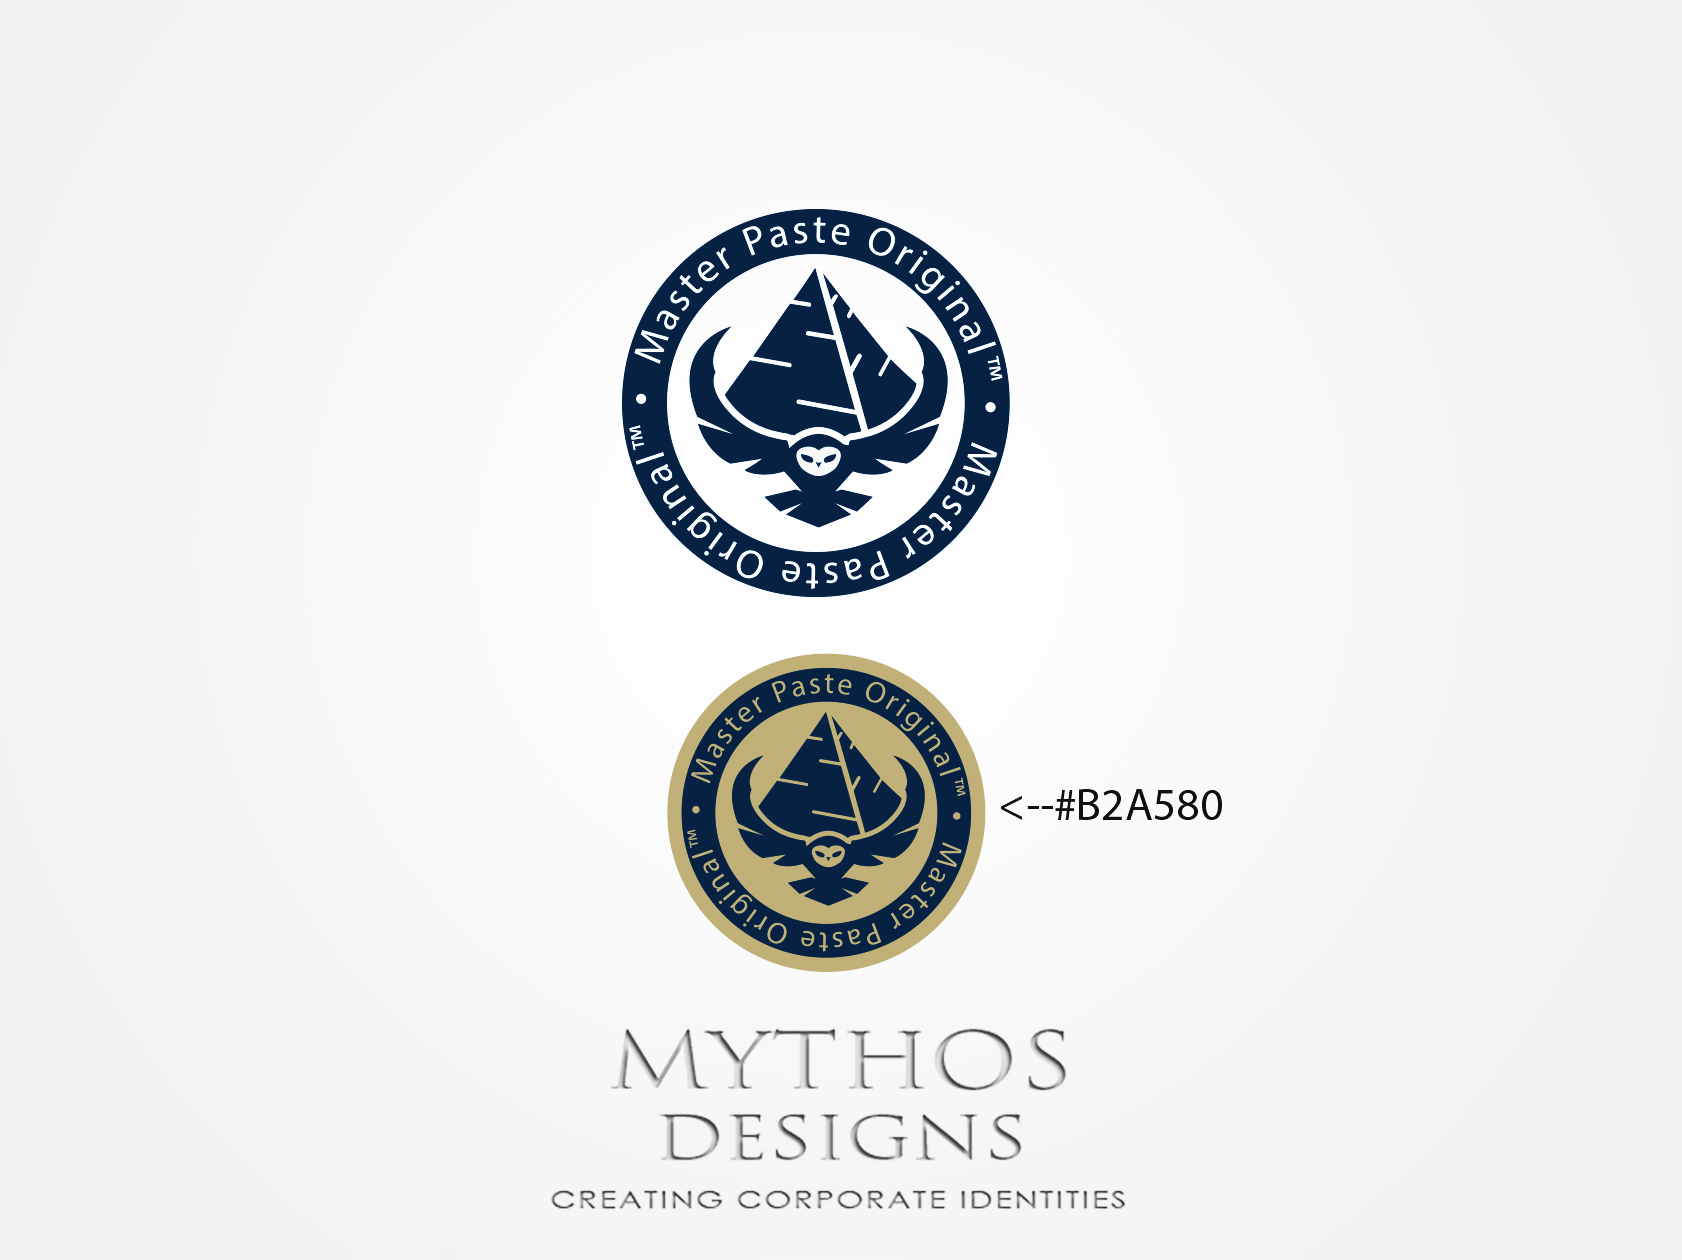 Logo Design by Mythos Designs - Entry No. 70 in the Logo Design Contest Unique Logo Design Wanted for Master Paste Original™.